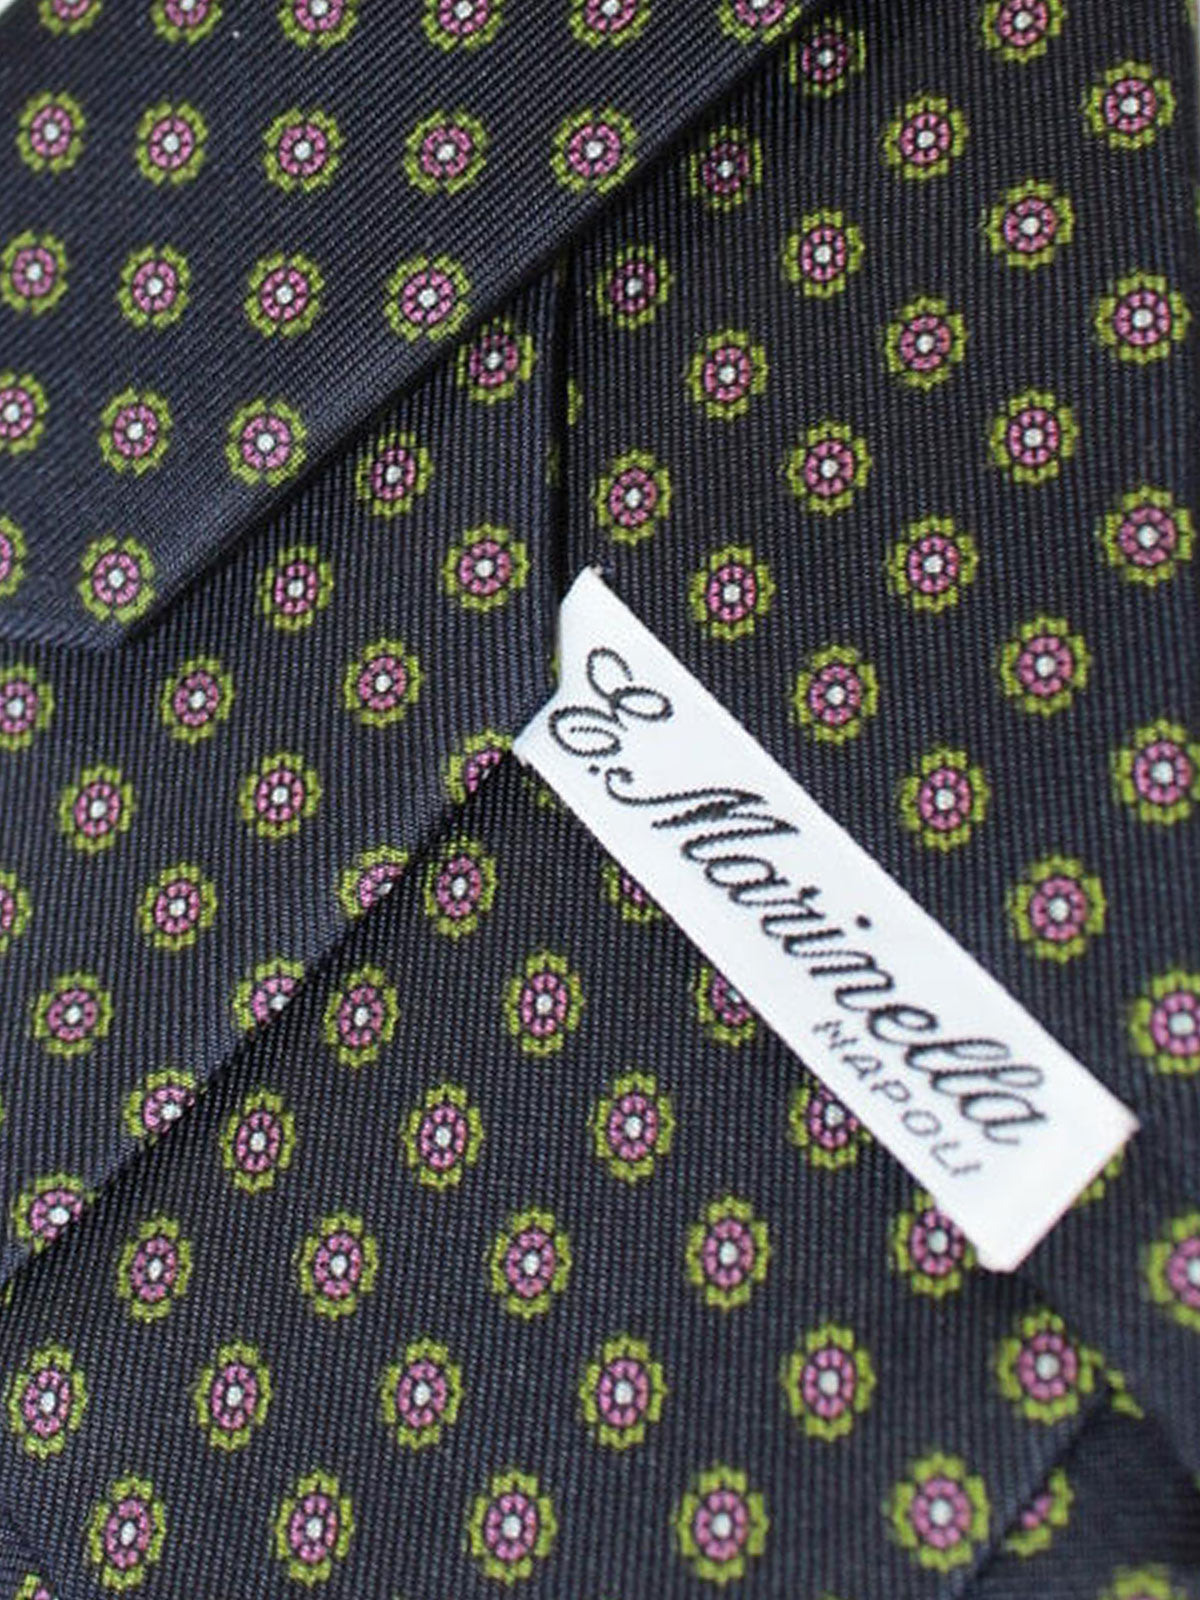 E. Marinella Silk Tie Dark Blue Green Pink Floral